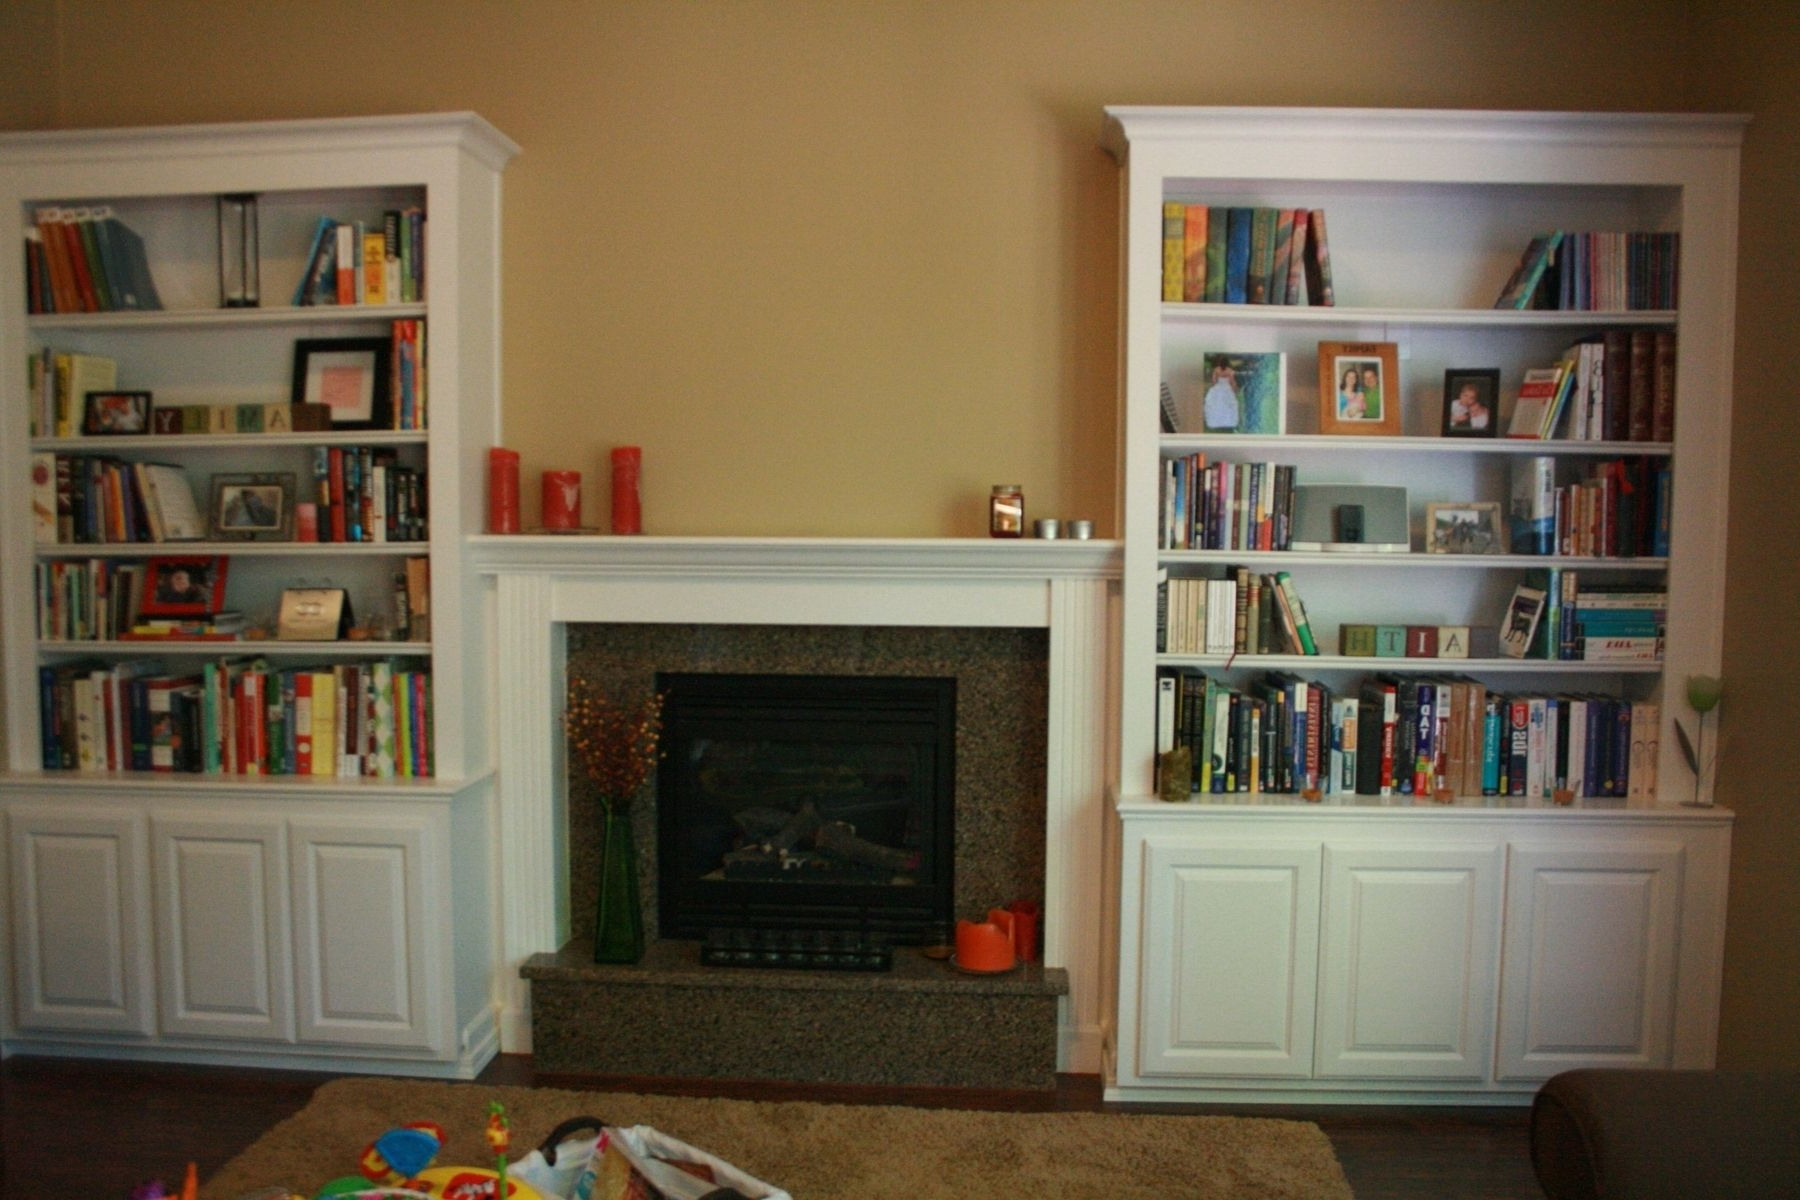 Current Built In Bookcases Kits Within Wall Units: Glamorous Built In Bookcase Kit Prefabricated (View 6 of 15)